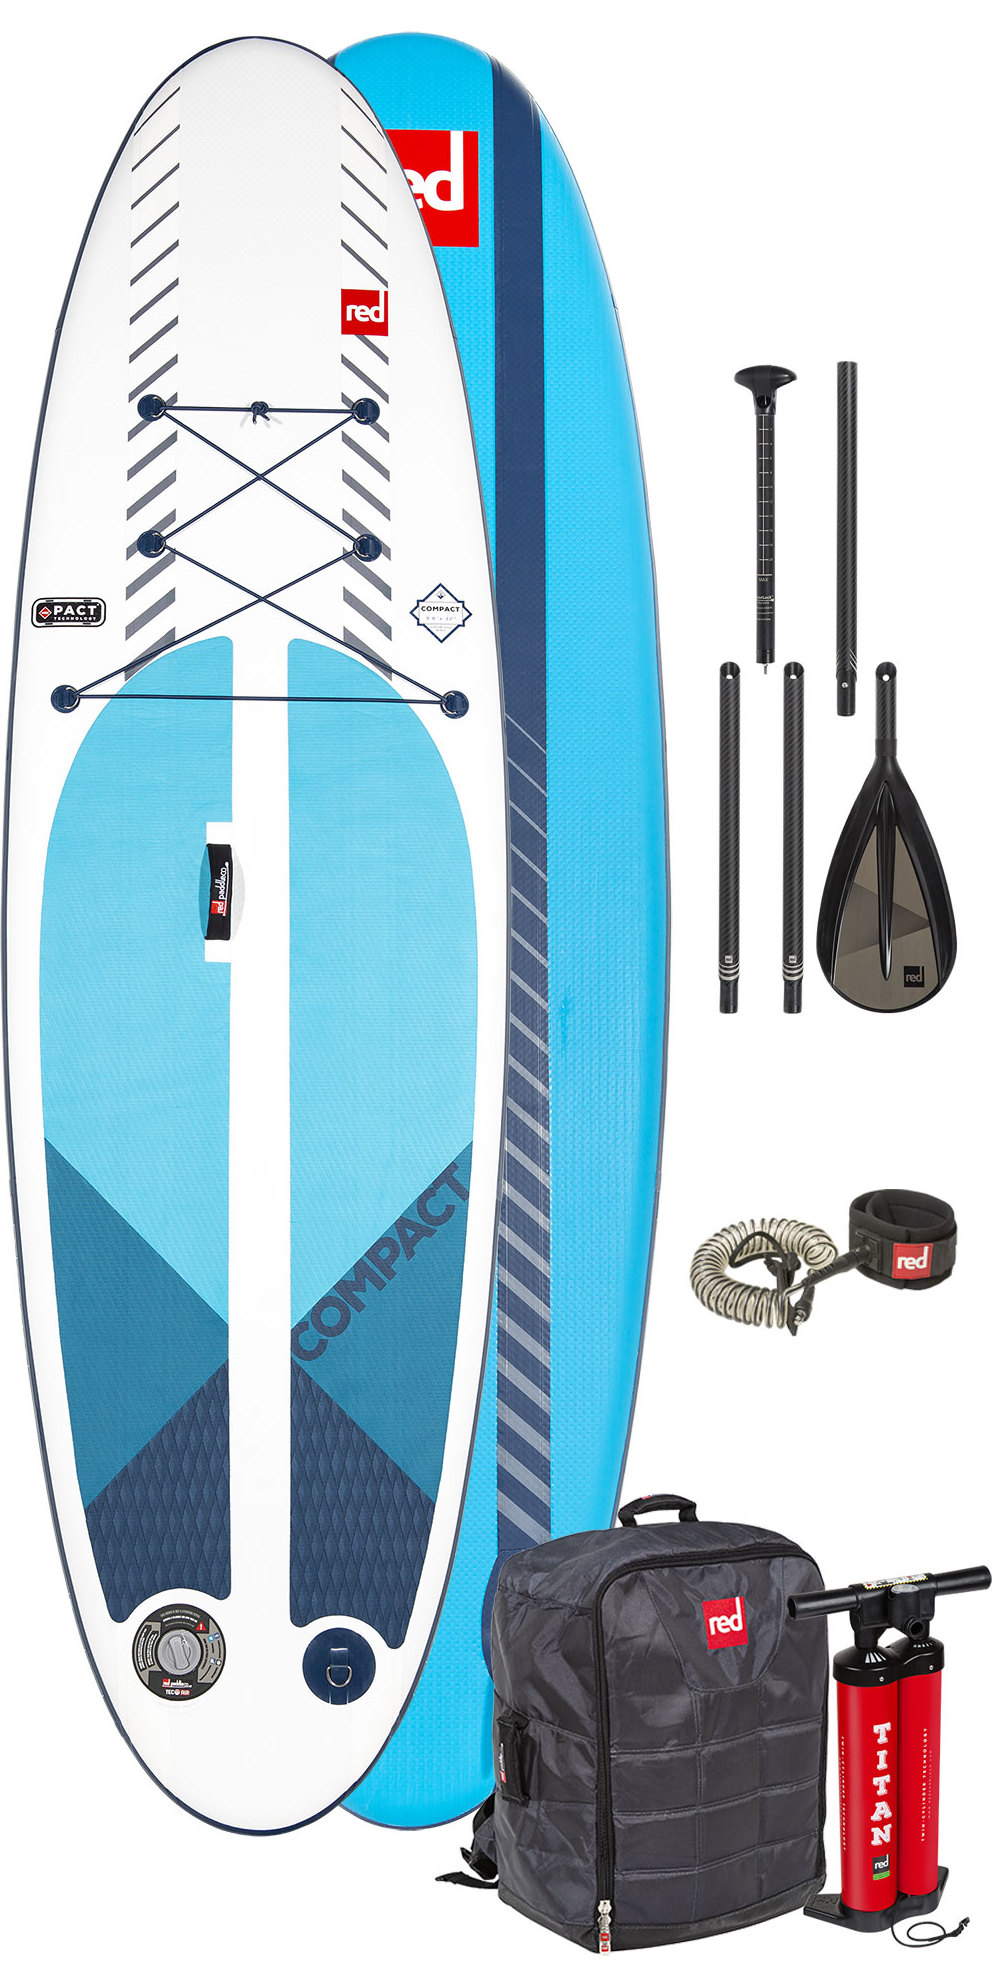 4bdc1e7c01 2019 Red Paddle Co 9'6 Compact Inflatable SUP Package - Board, Bag, Pump,  Paddle & Leash